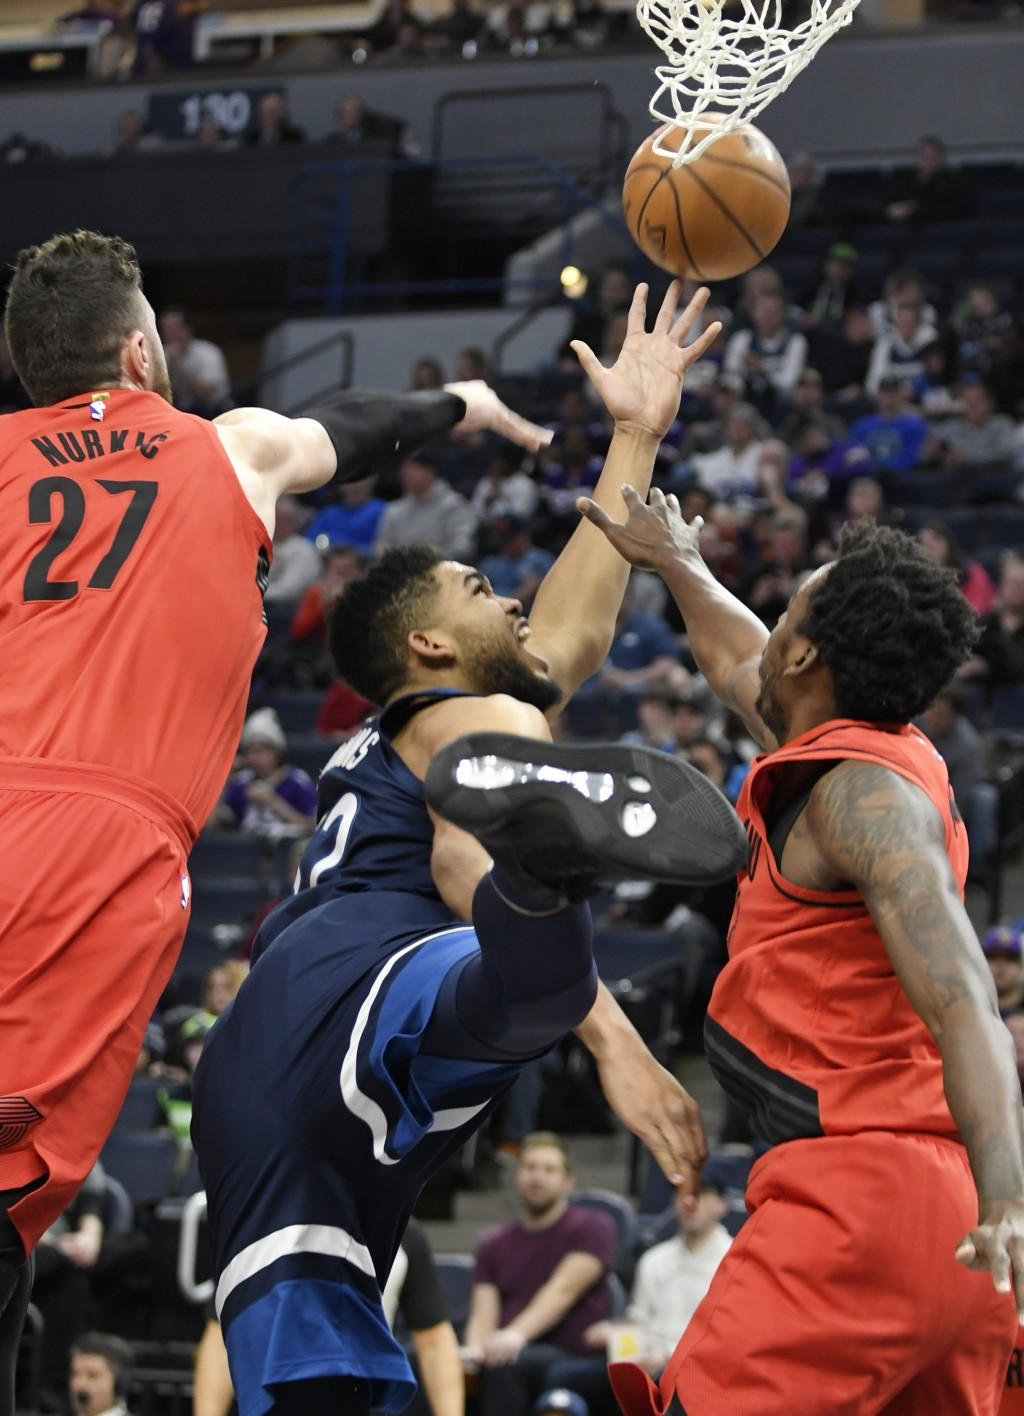 Minnesota Timberwolves' Karl-Anthony Towns, center, falls between Portland Trail Blazers' Jusuf Nurkic (27) and Al-Faroug Aminu, right,while getting o...